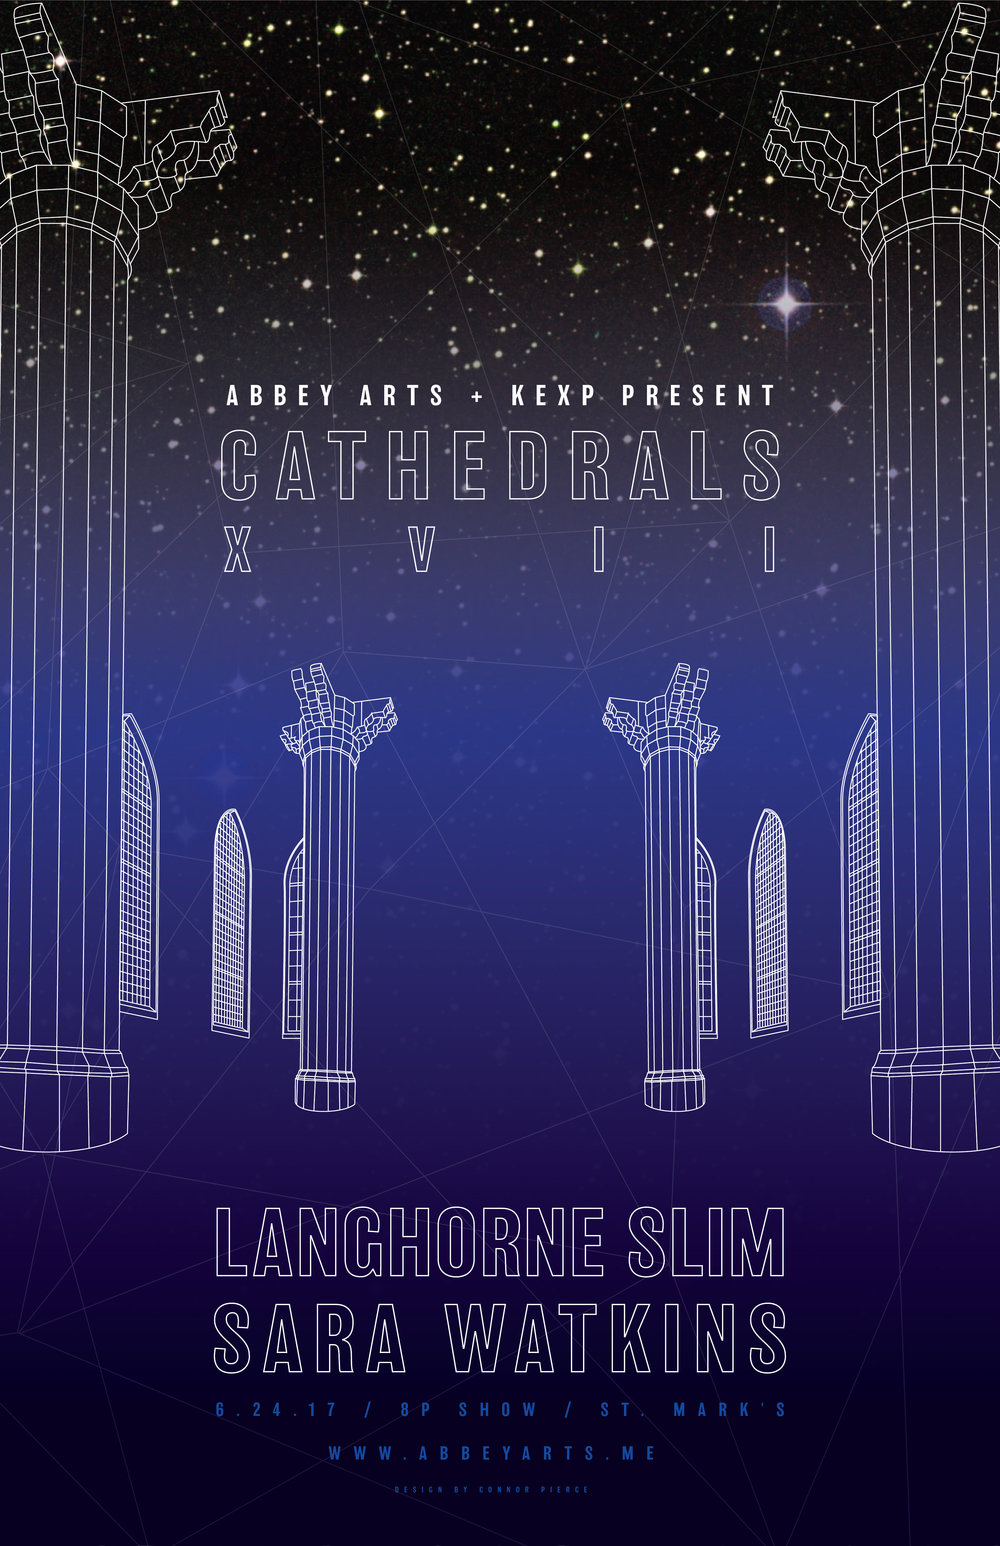 Cathedrals Promo